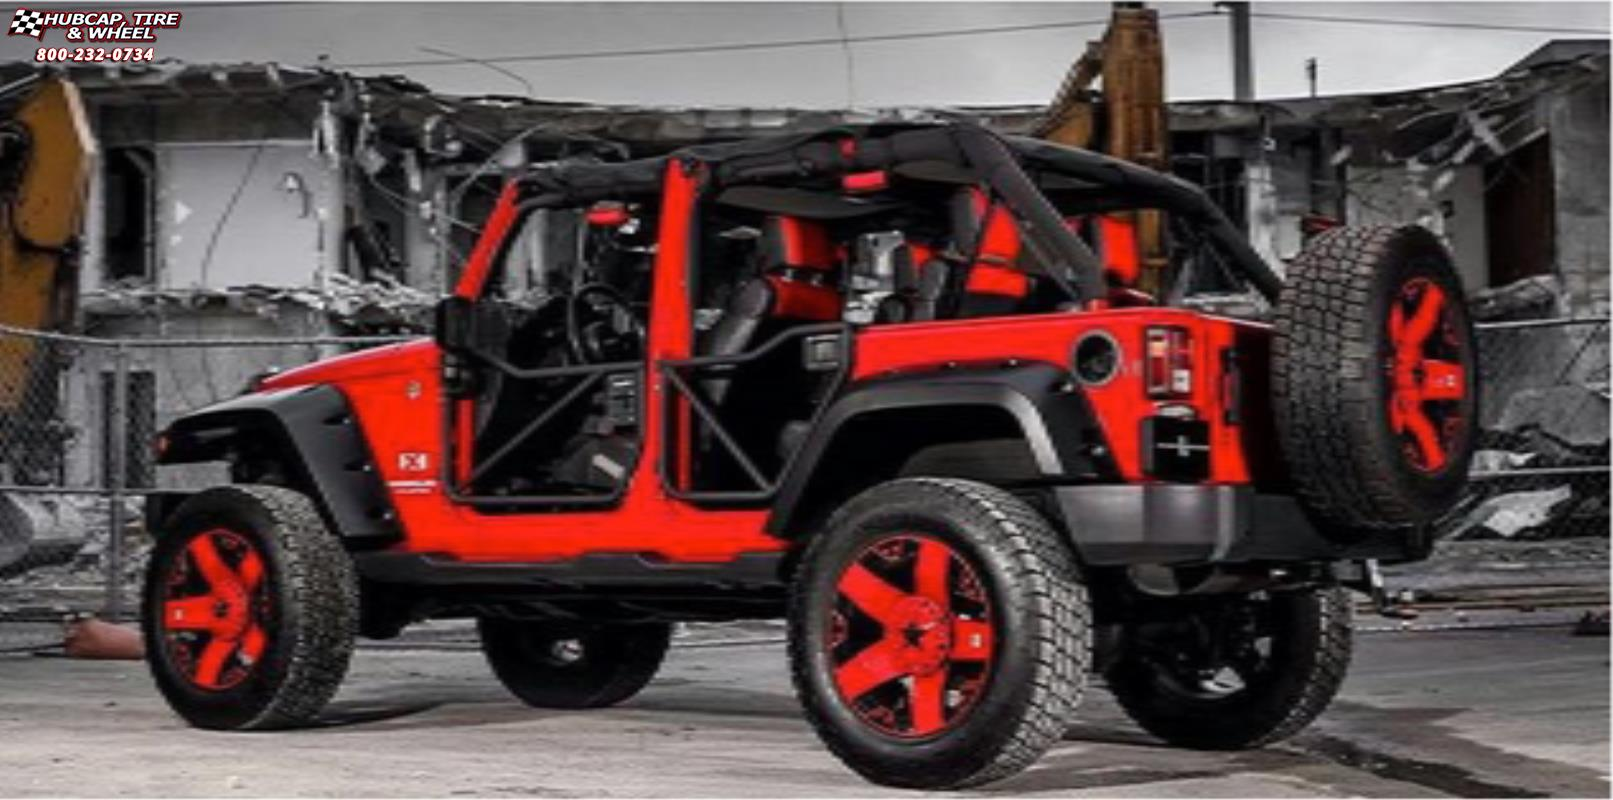 Jeep Wrangler Xd Series Xd775 Rockstar X Matte Black Red Wheels And Rims